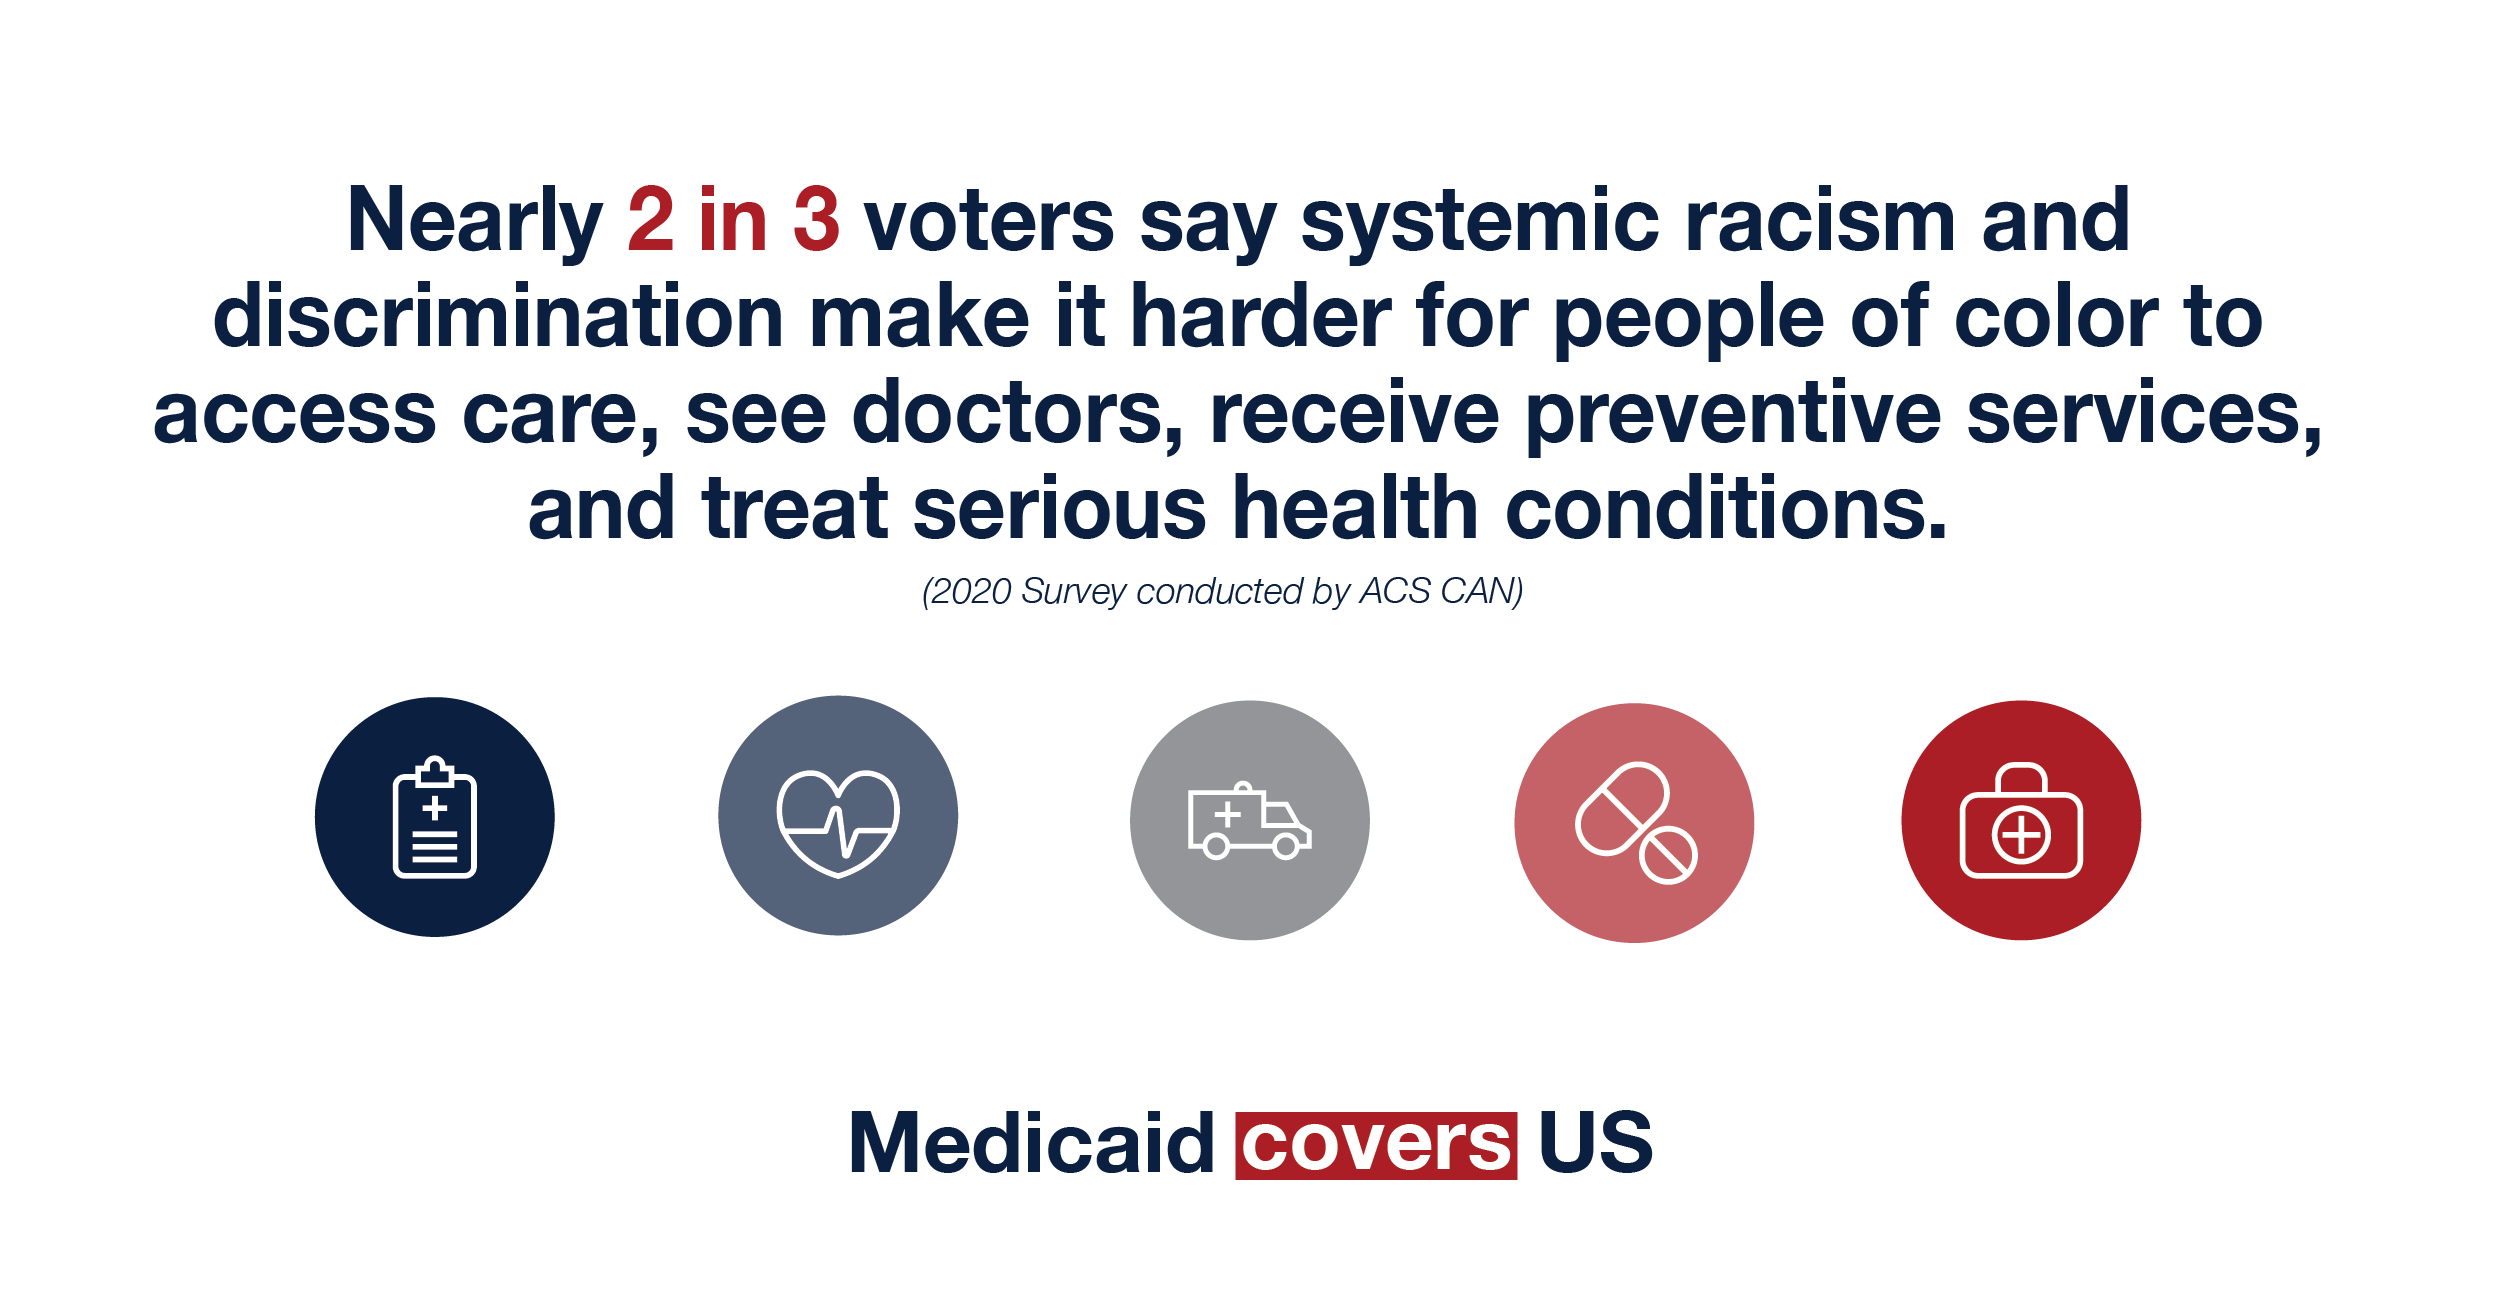 Nearly 2 in 3 voters say systemic racism and discrimination make it harder for people of color to access care, see doctors, receive preventive services and treat serious health conditions.